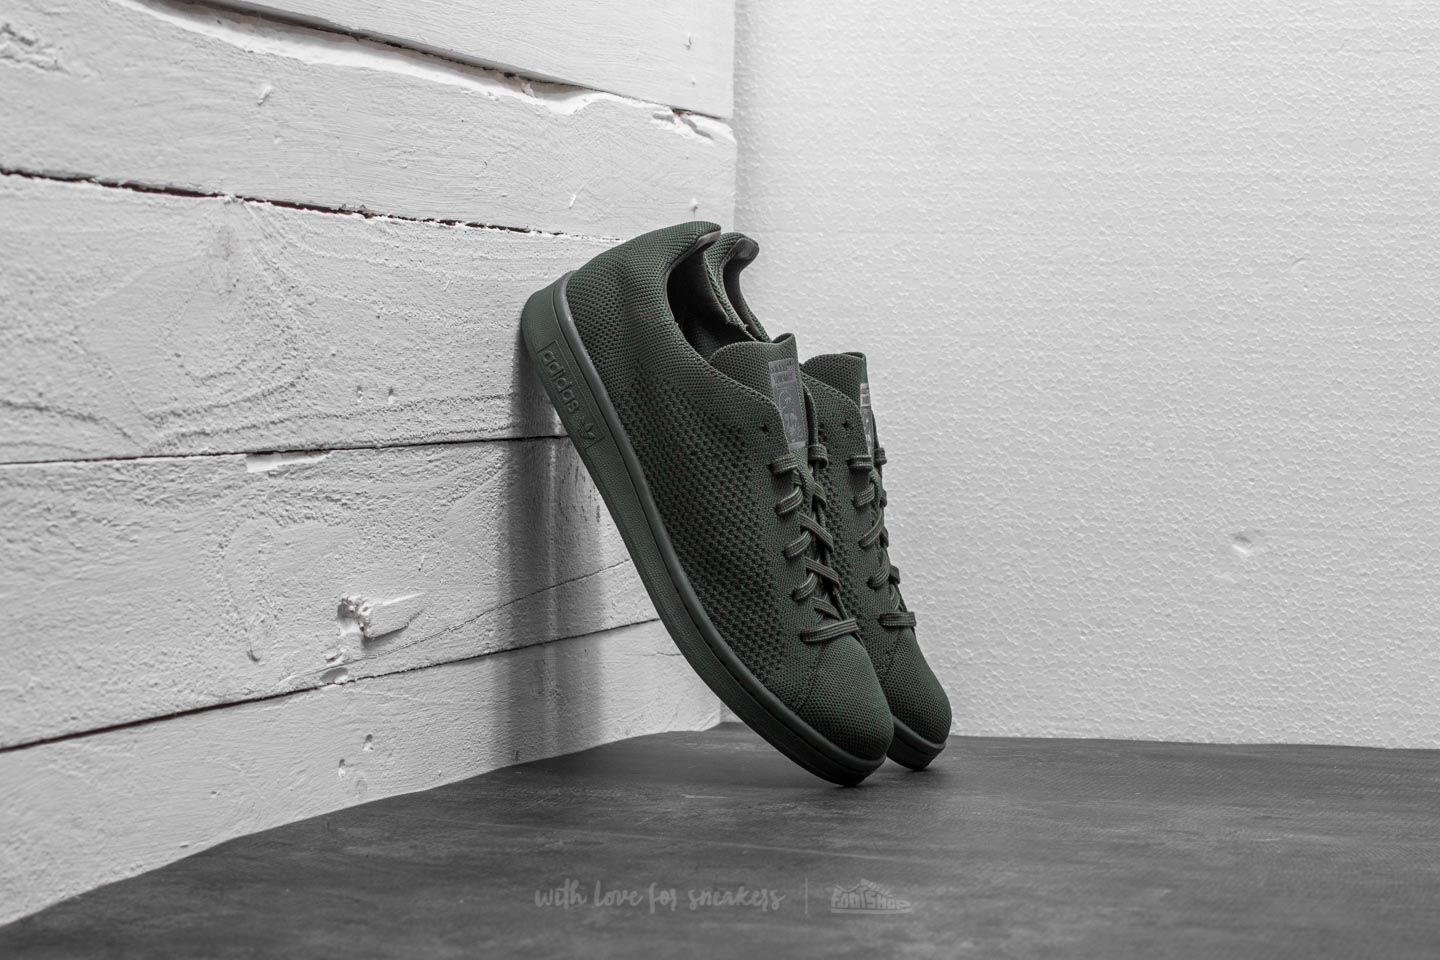 adidas Stan Smith Primeknit Night Cargo/ Night Cargo/ Night Cargo